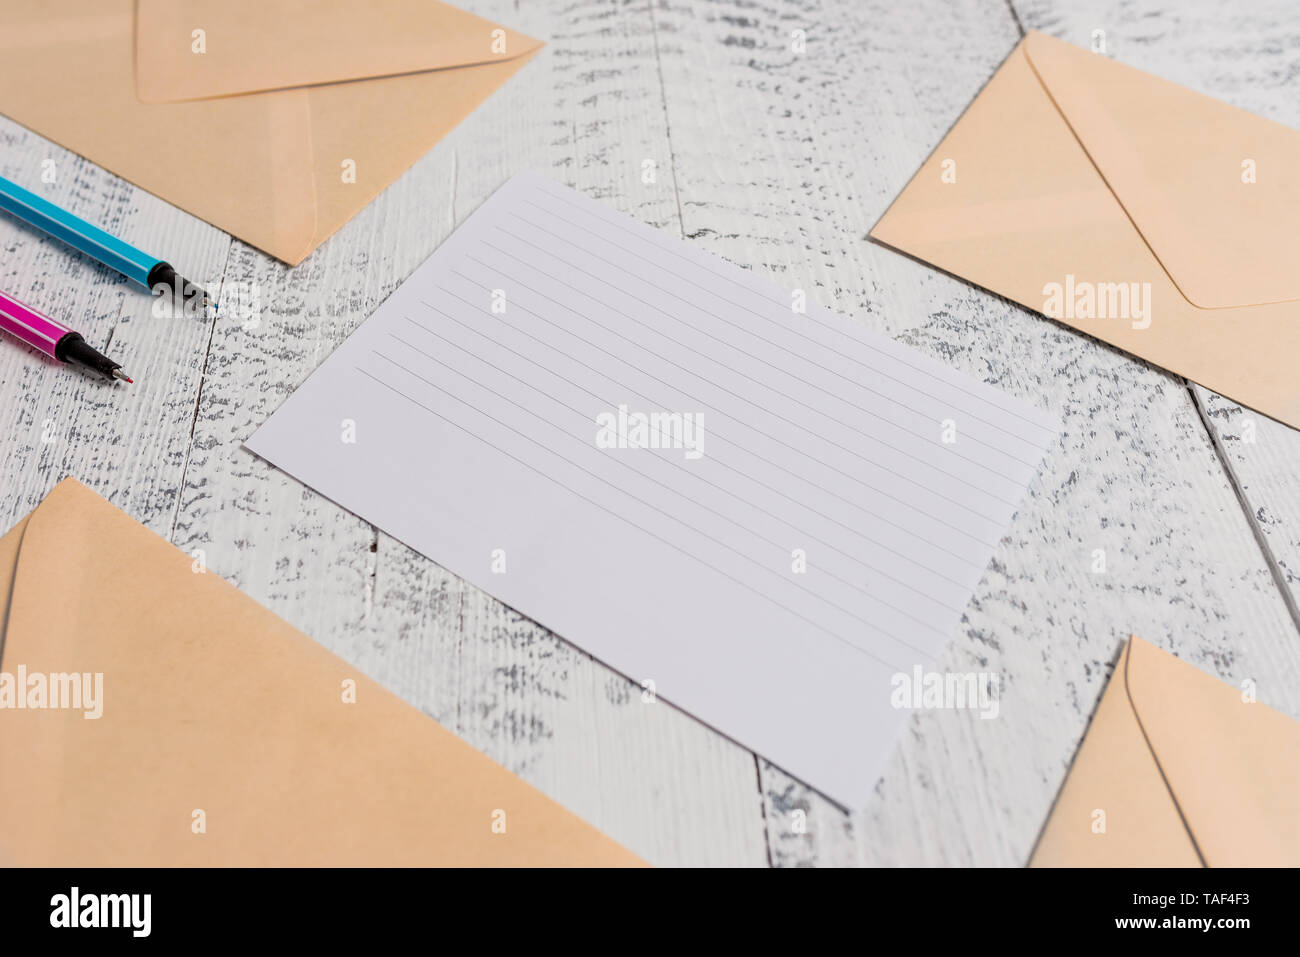 Envelopes highlighters ruled paper sheet wooden retro vintage background - Stock Image